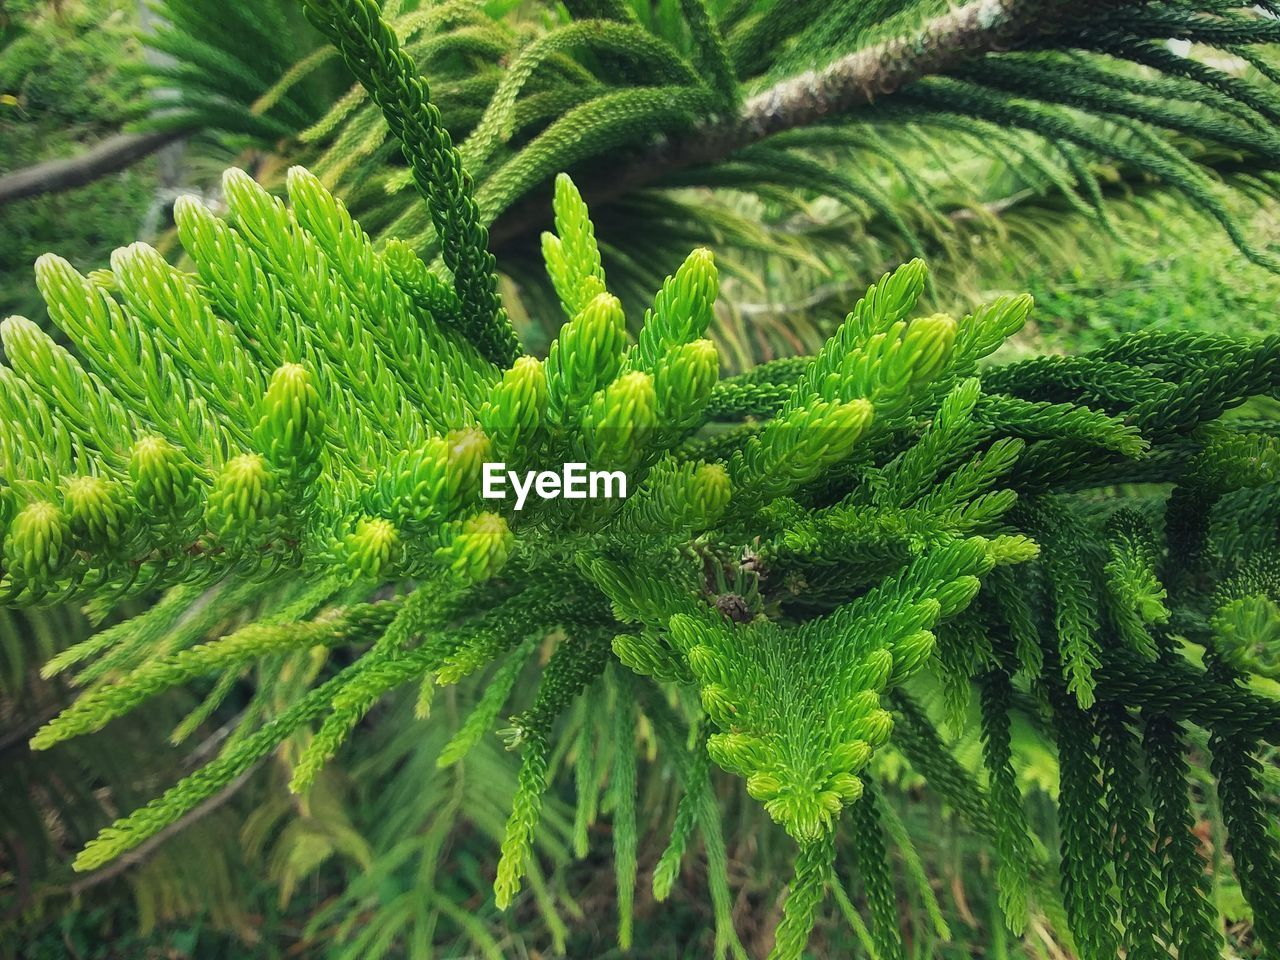 green color, growth, plant, close-up, leaf, plant part, day, nature, no people, beauty in nature, outdoors, freshness, focus on foreground, tranquility, tree, pine tree, herb, coniferous tree, branch, needle - plant part, fir tree